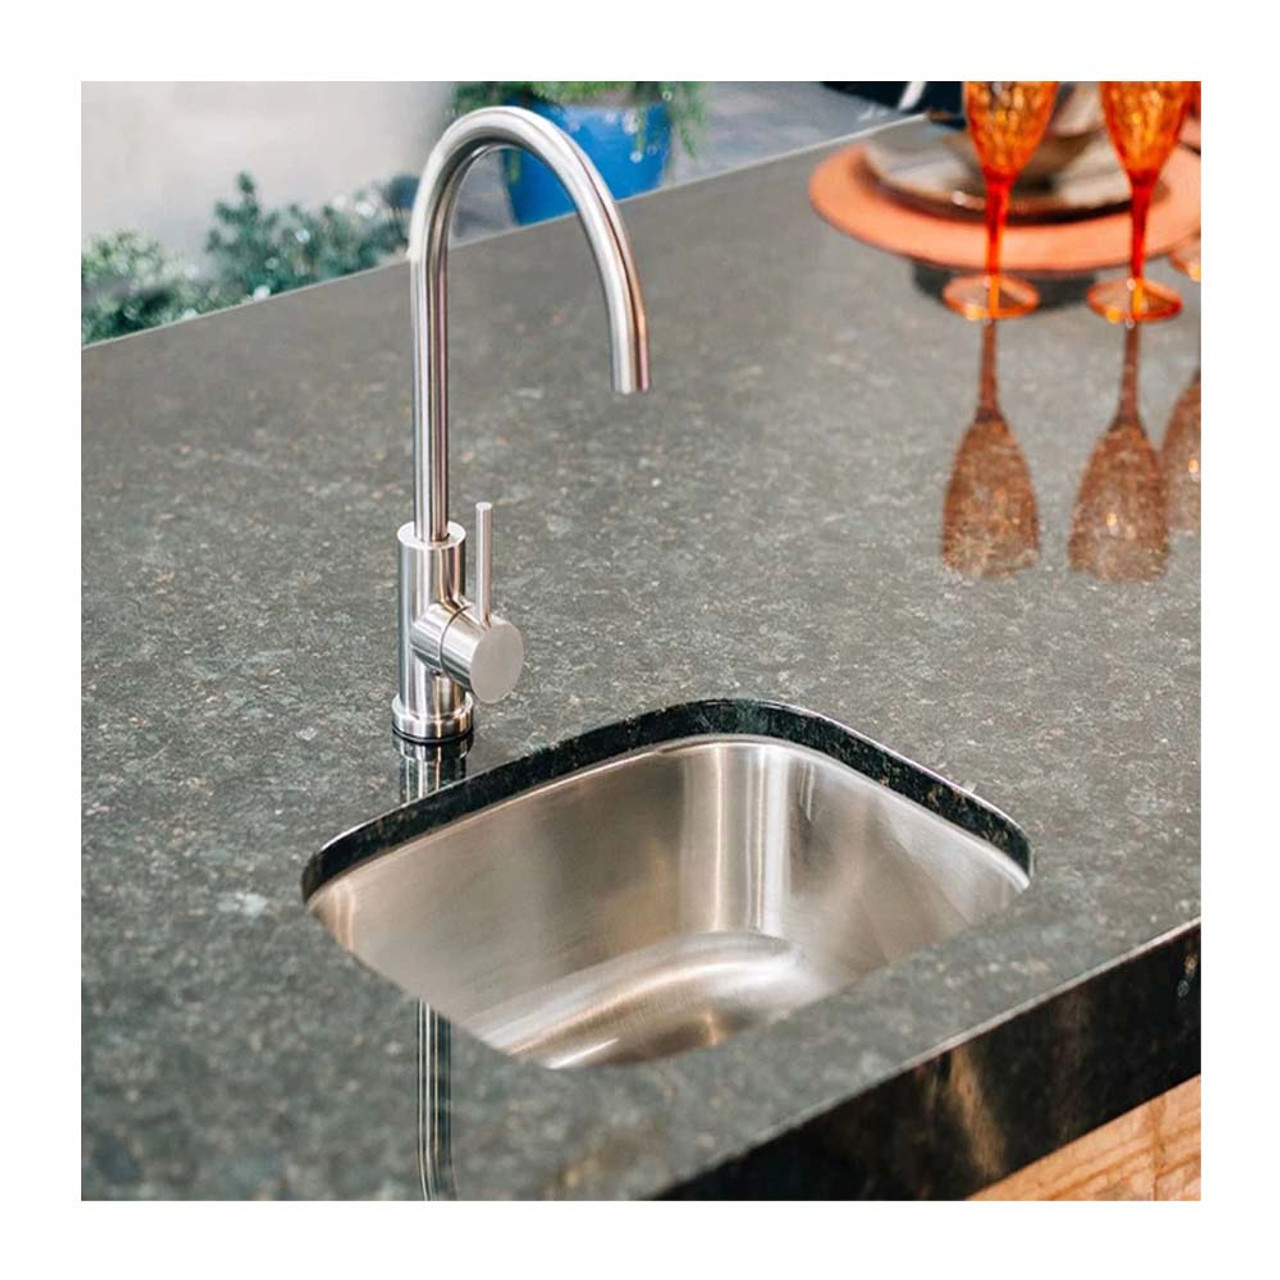 19x15 stainless steel undermount sink 360º hot cold faucet summerset grills